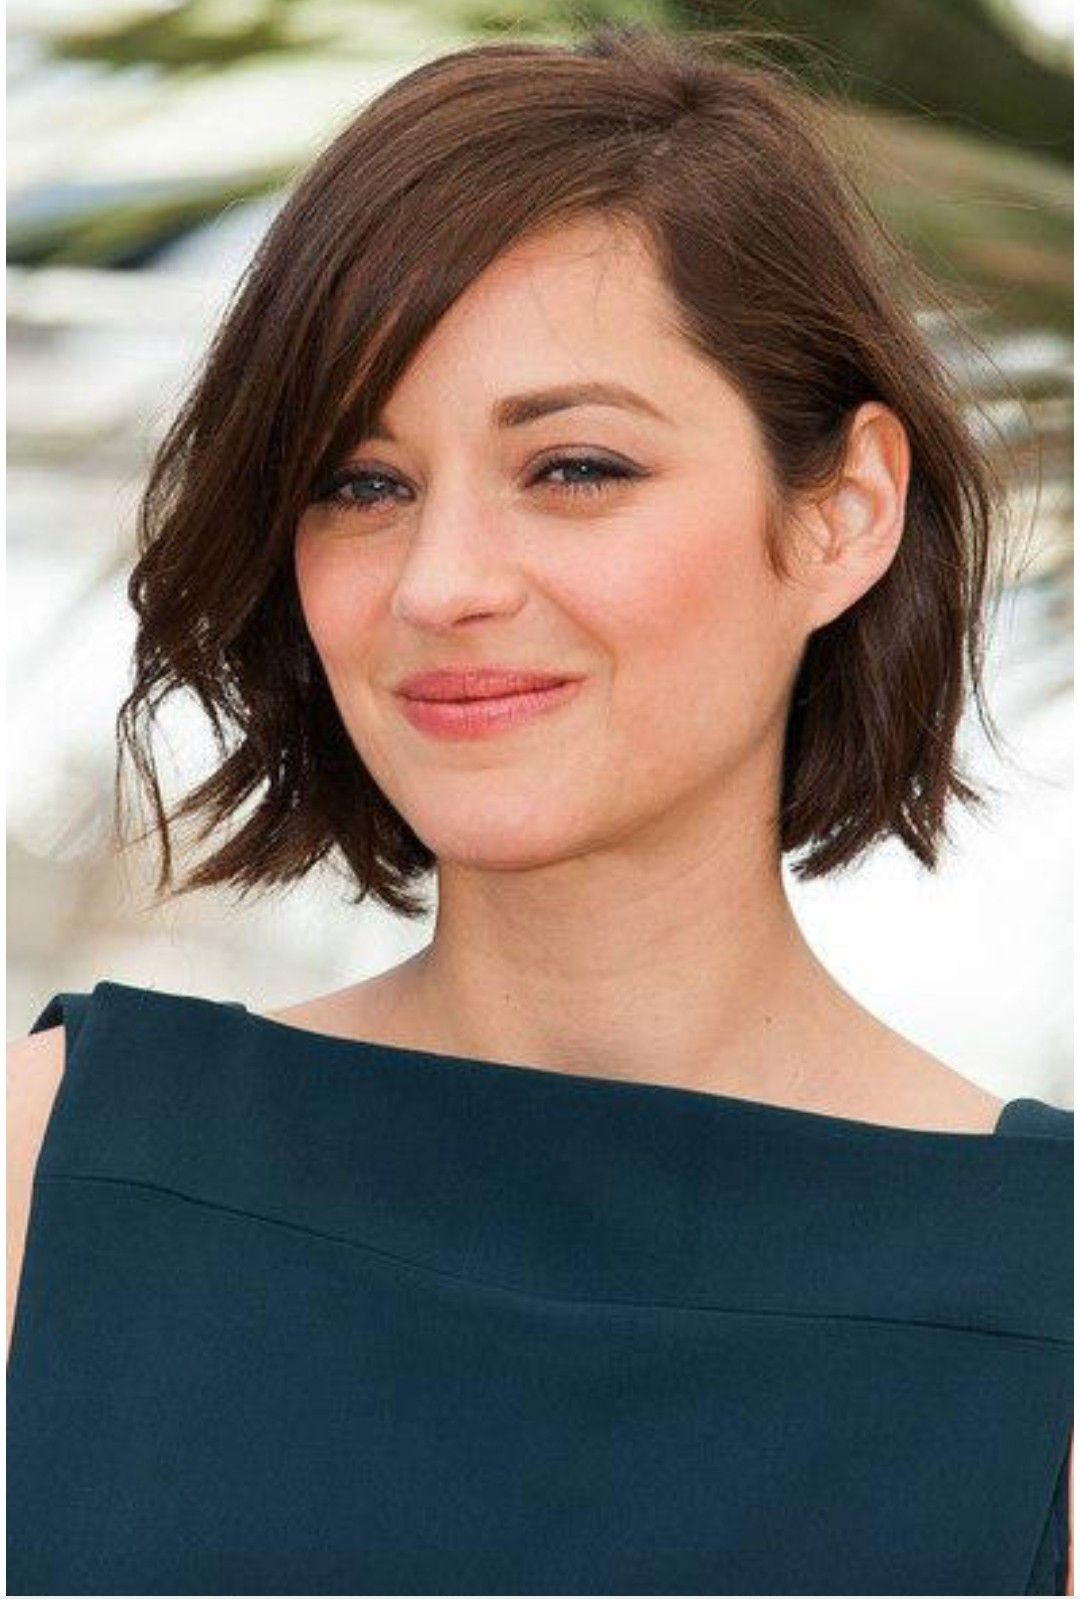 Chin length hair image by heather piergies on beauty board